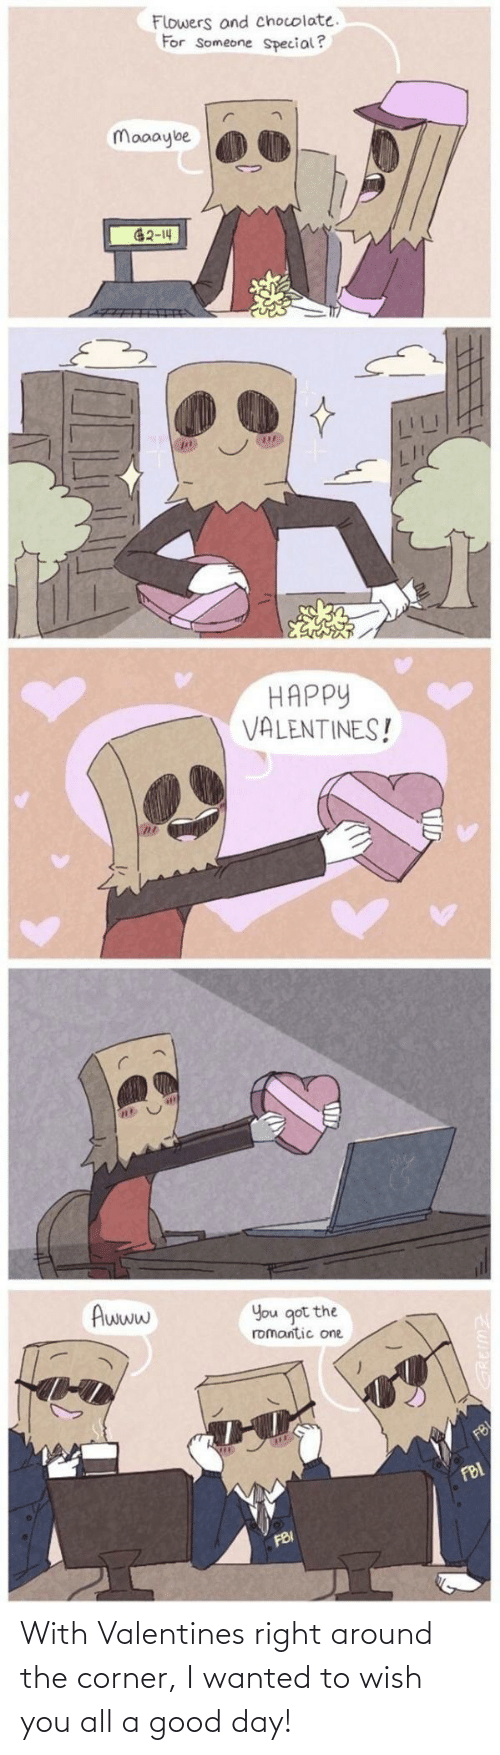 right: With Valentines right around the corner, I wanted to wish you all a good day!